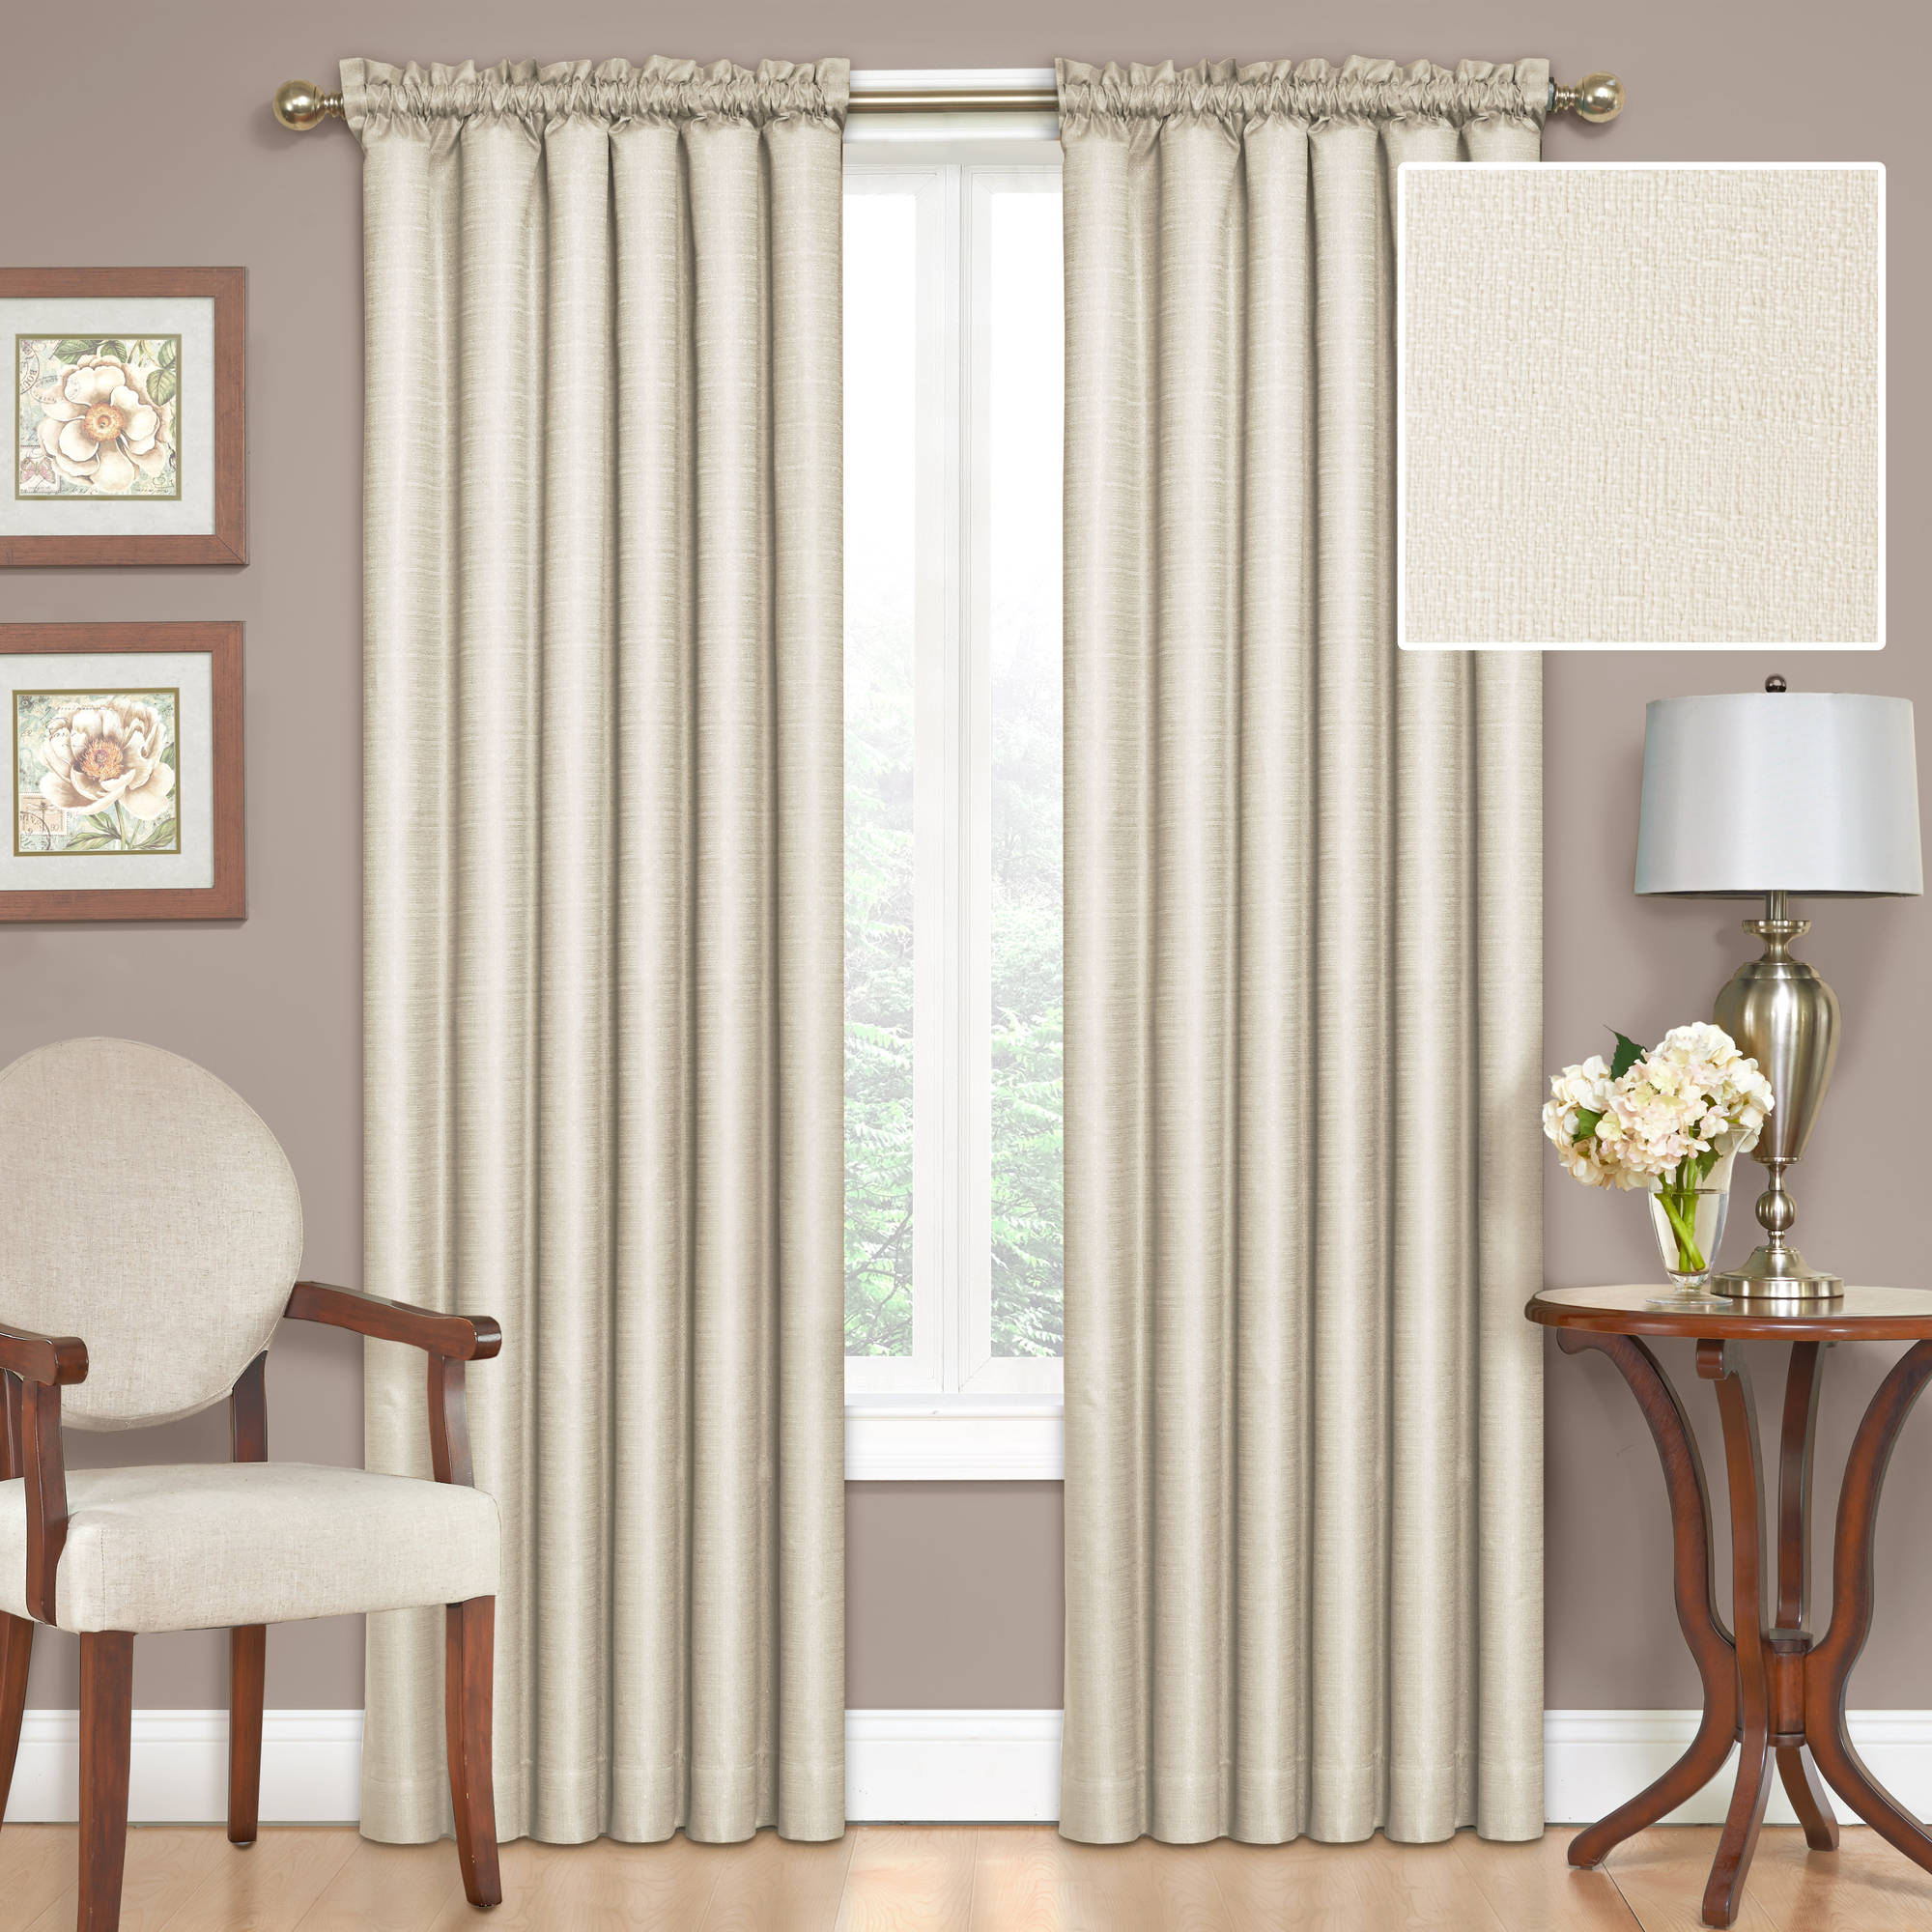 Eclipse Samara Blackout Energy-Efficient Thermal Curtain Panel Available In Multiple Sizes And Colors